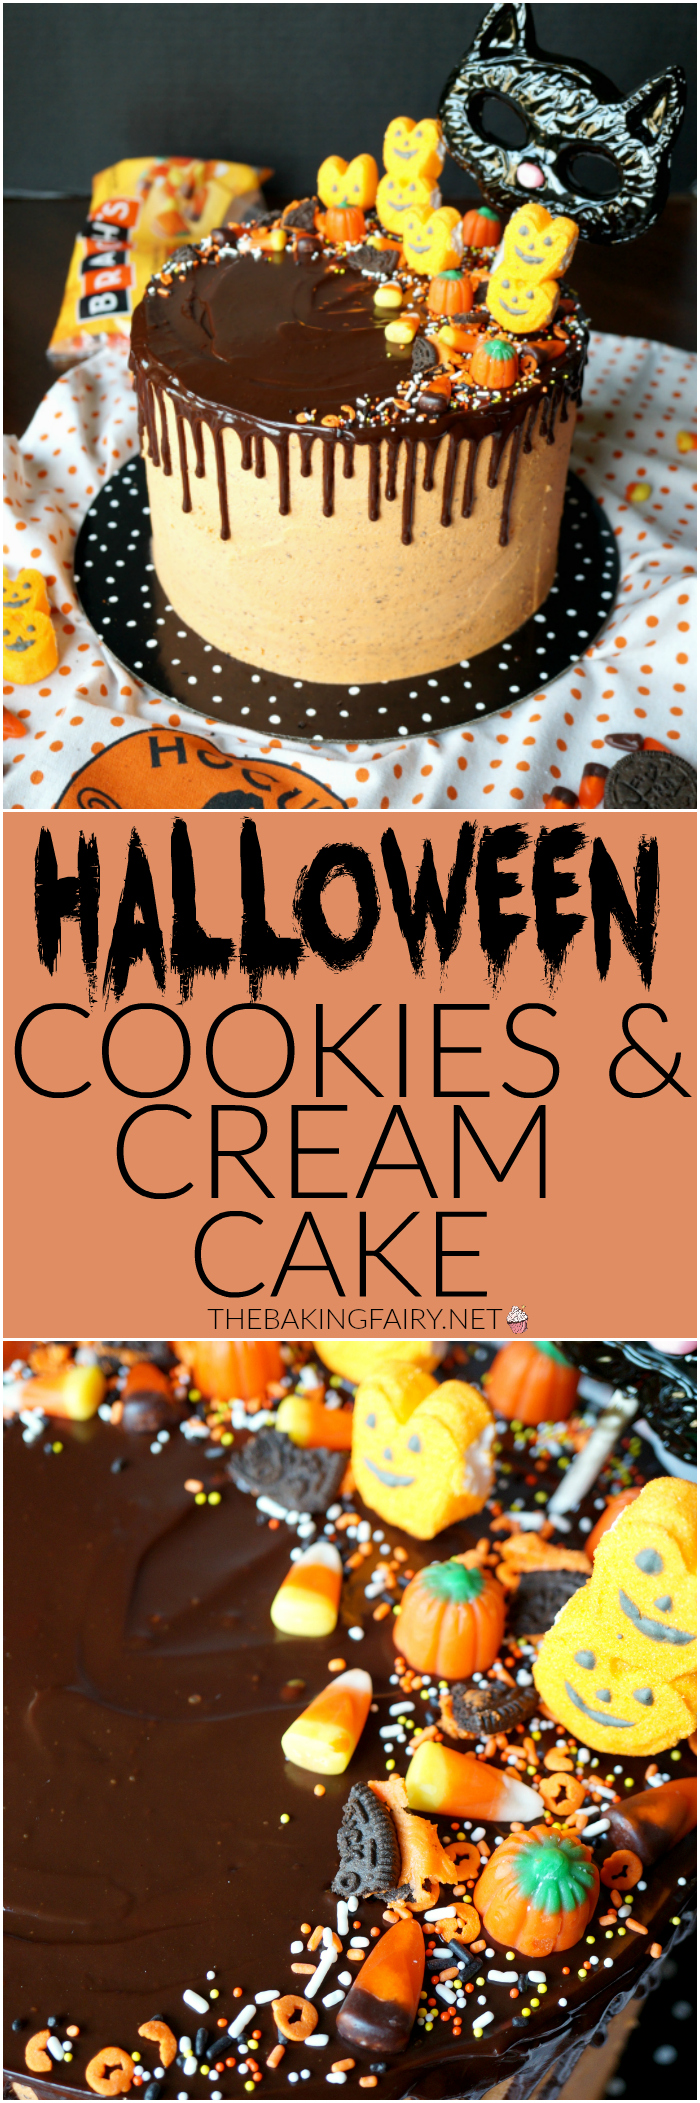 Halloween cookies & cream cake | The Baking Fairy